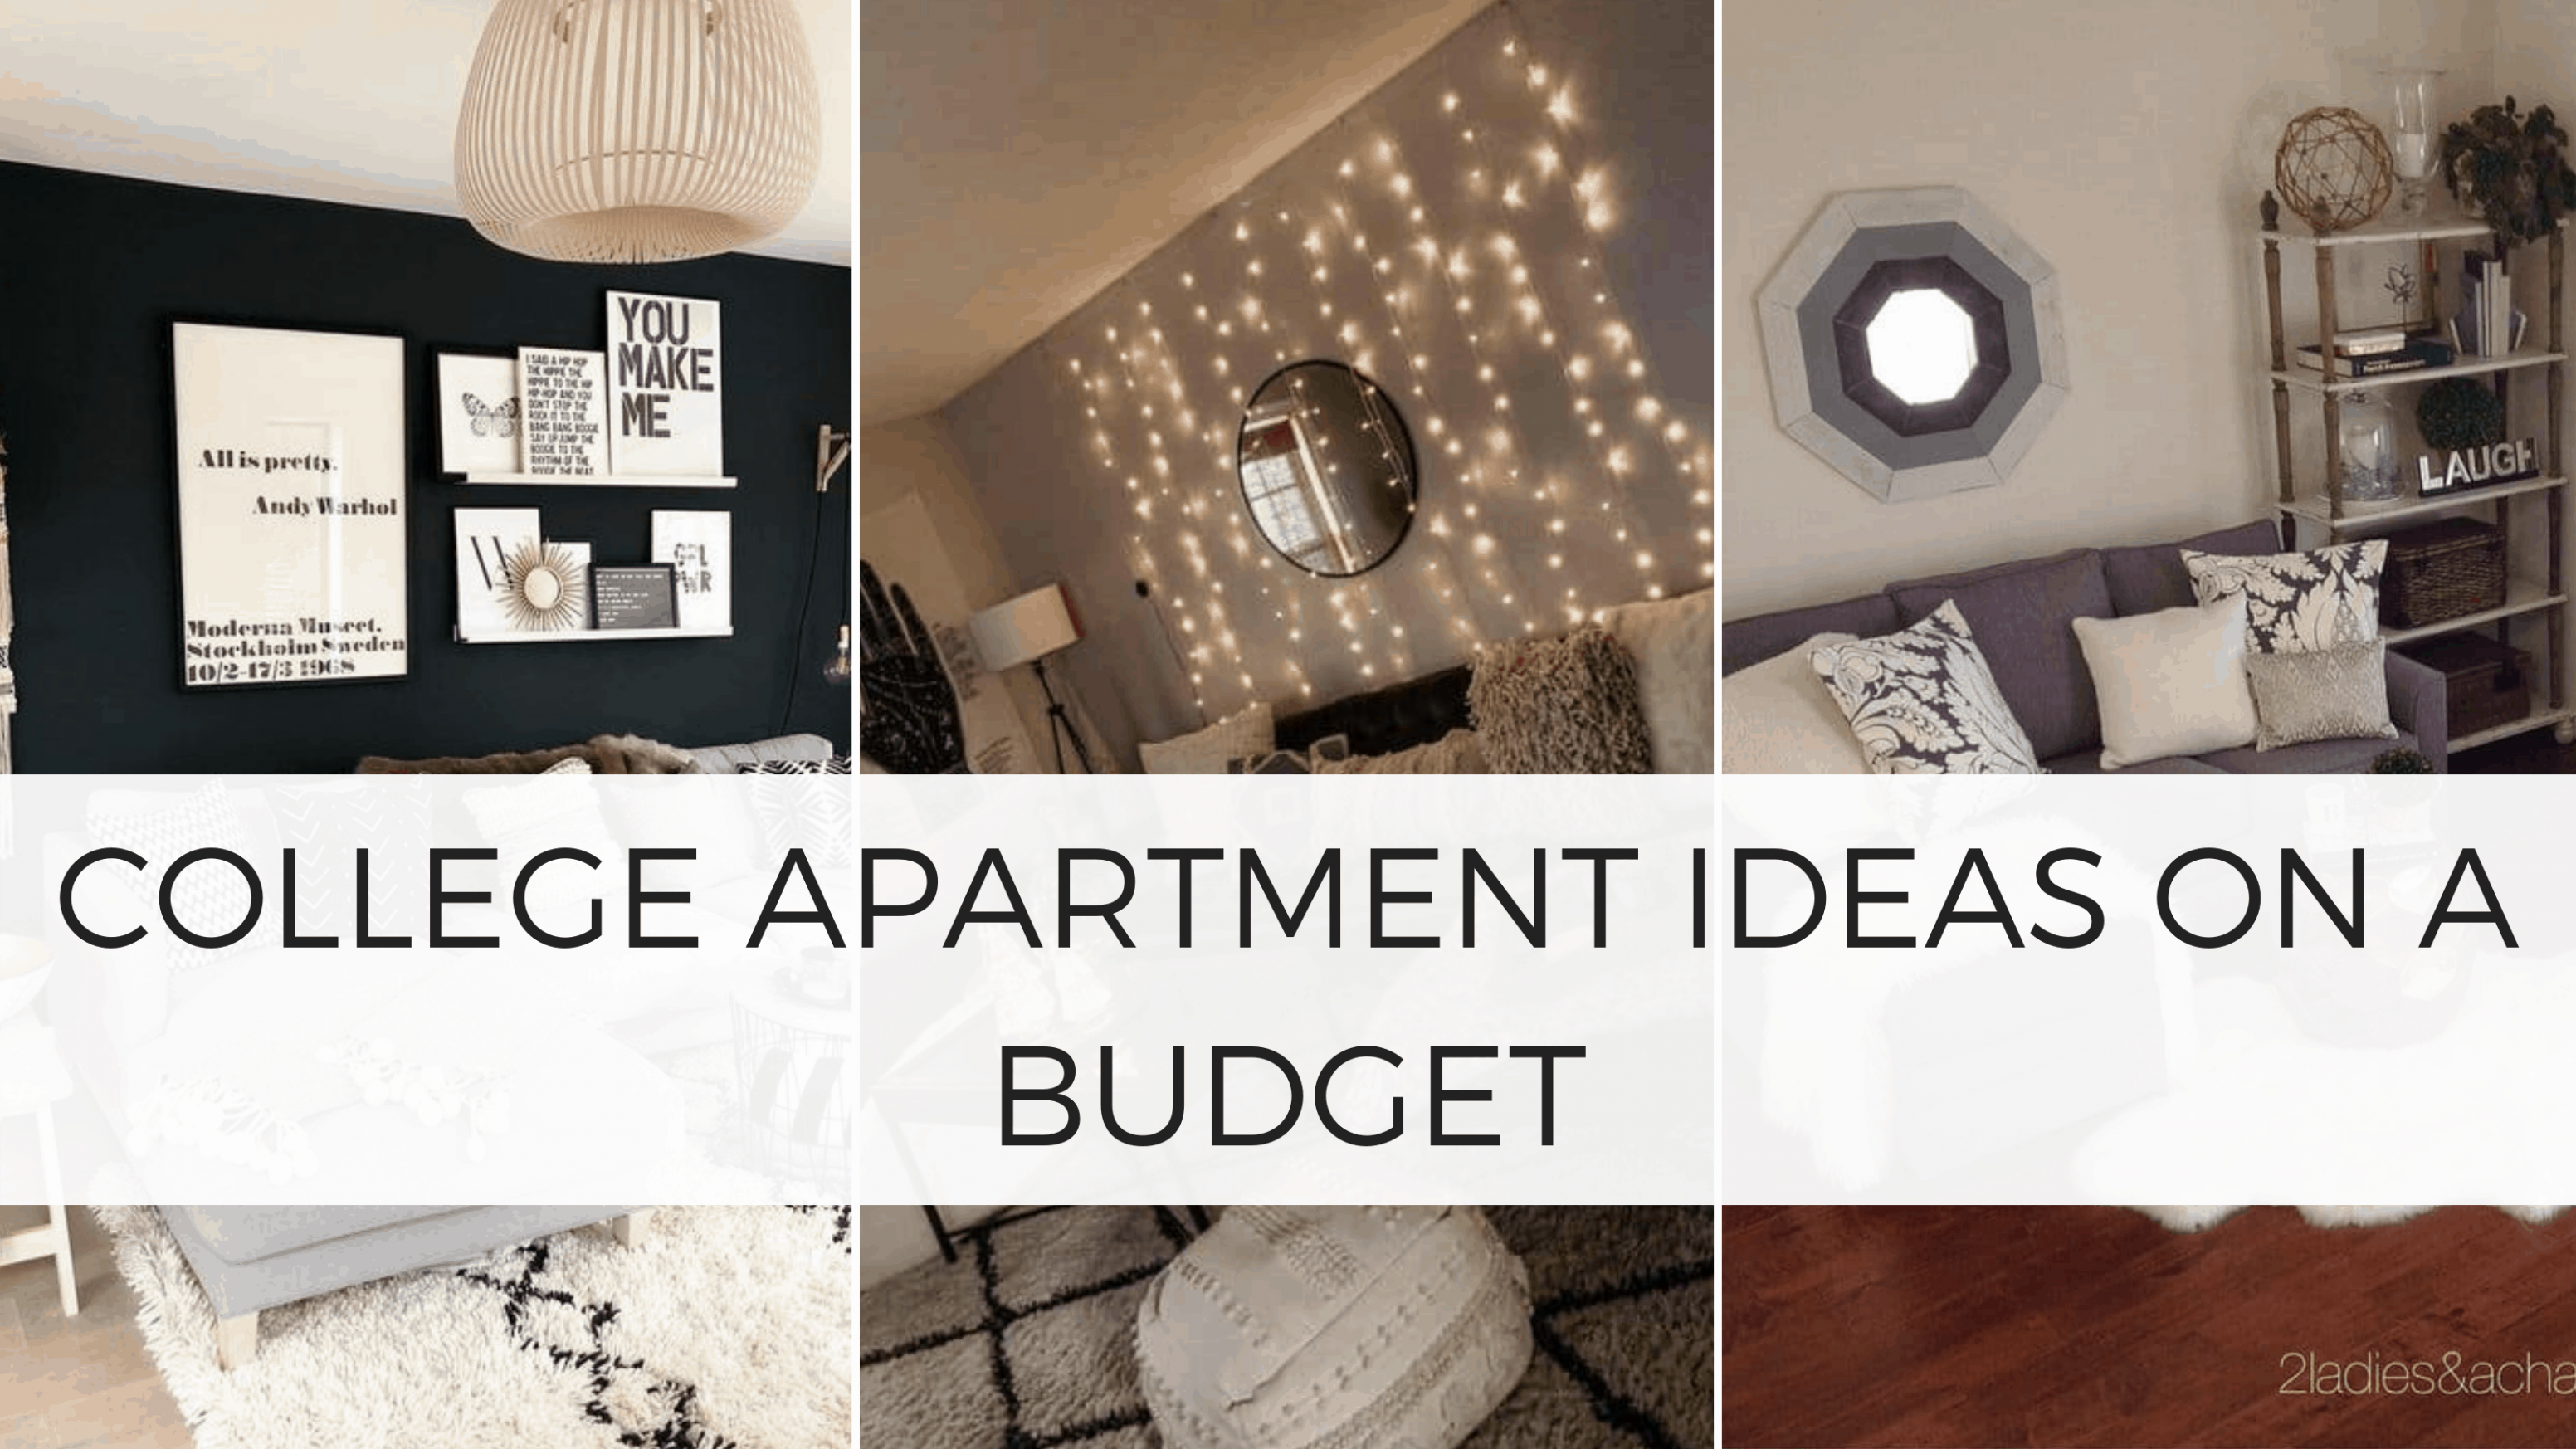 11 Genius College Apartment Decorating Ideas on a Budget - By ..